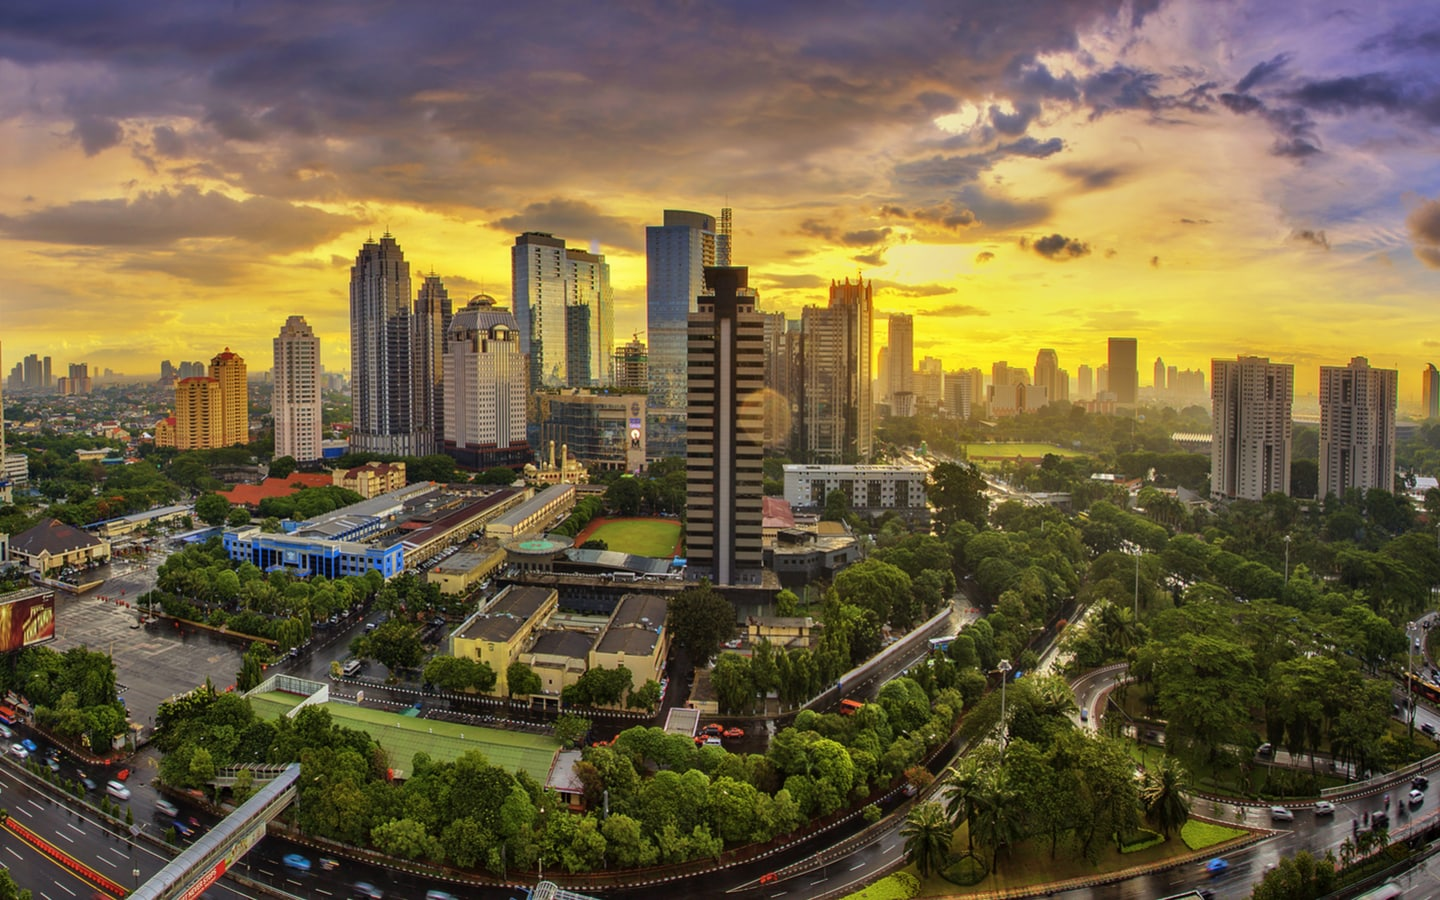 Indonesia is one of the best countries for real estate investment